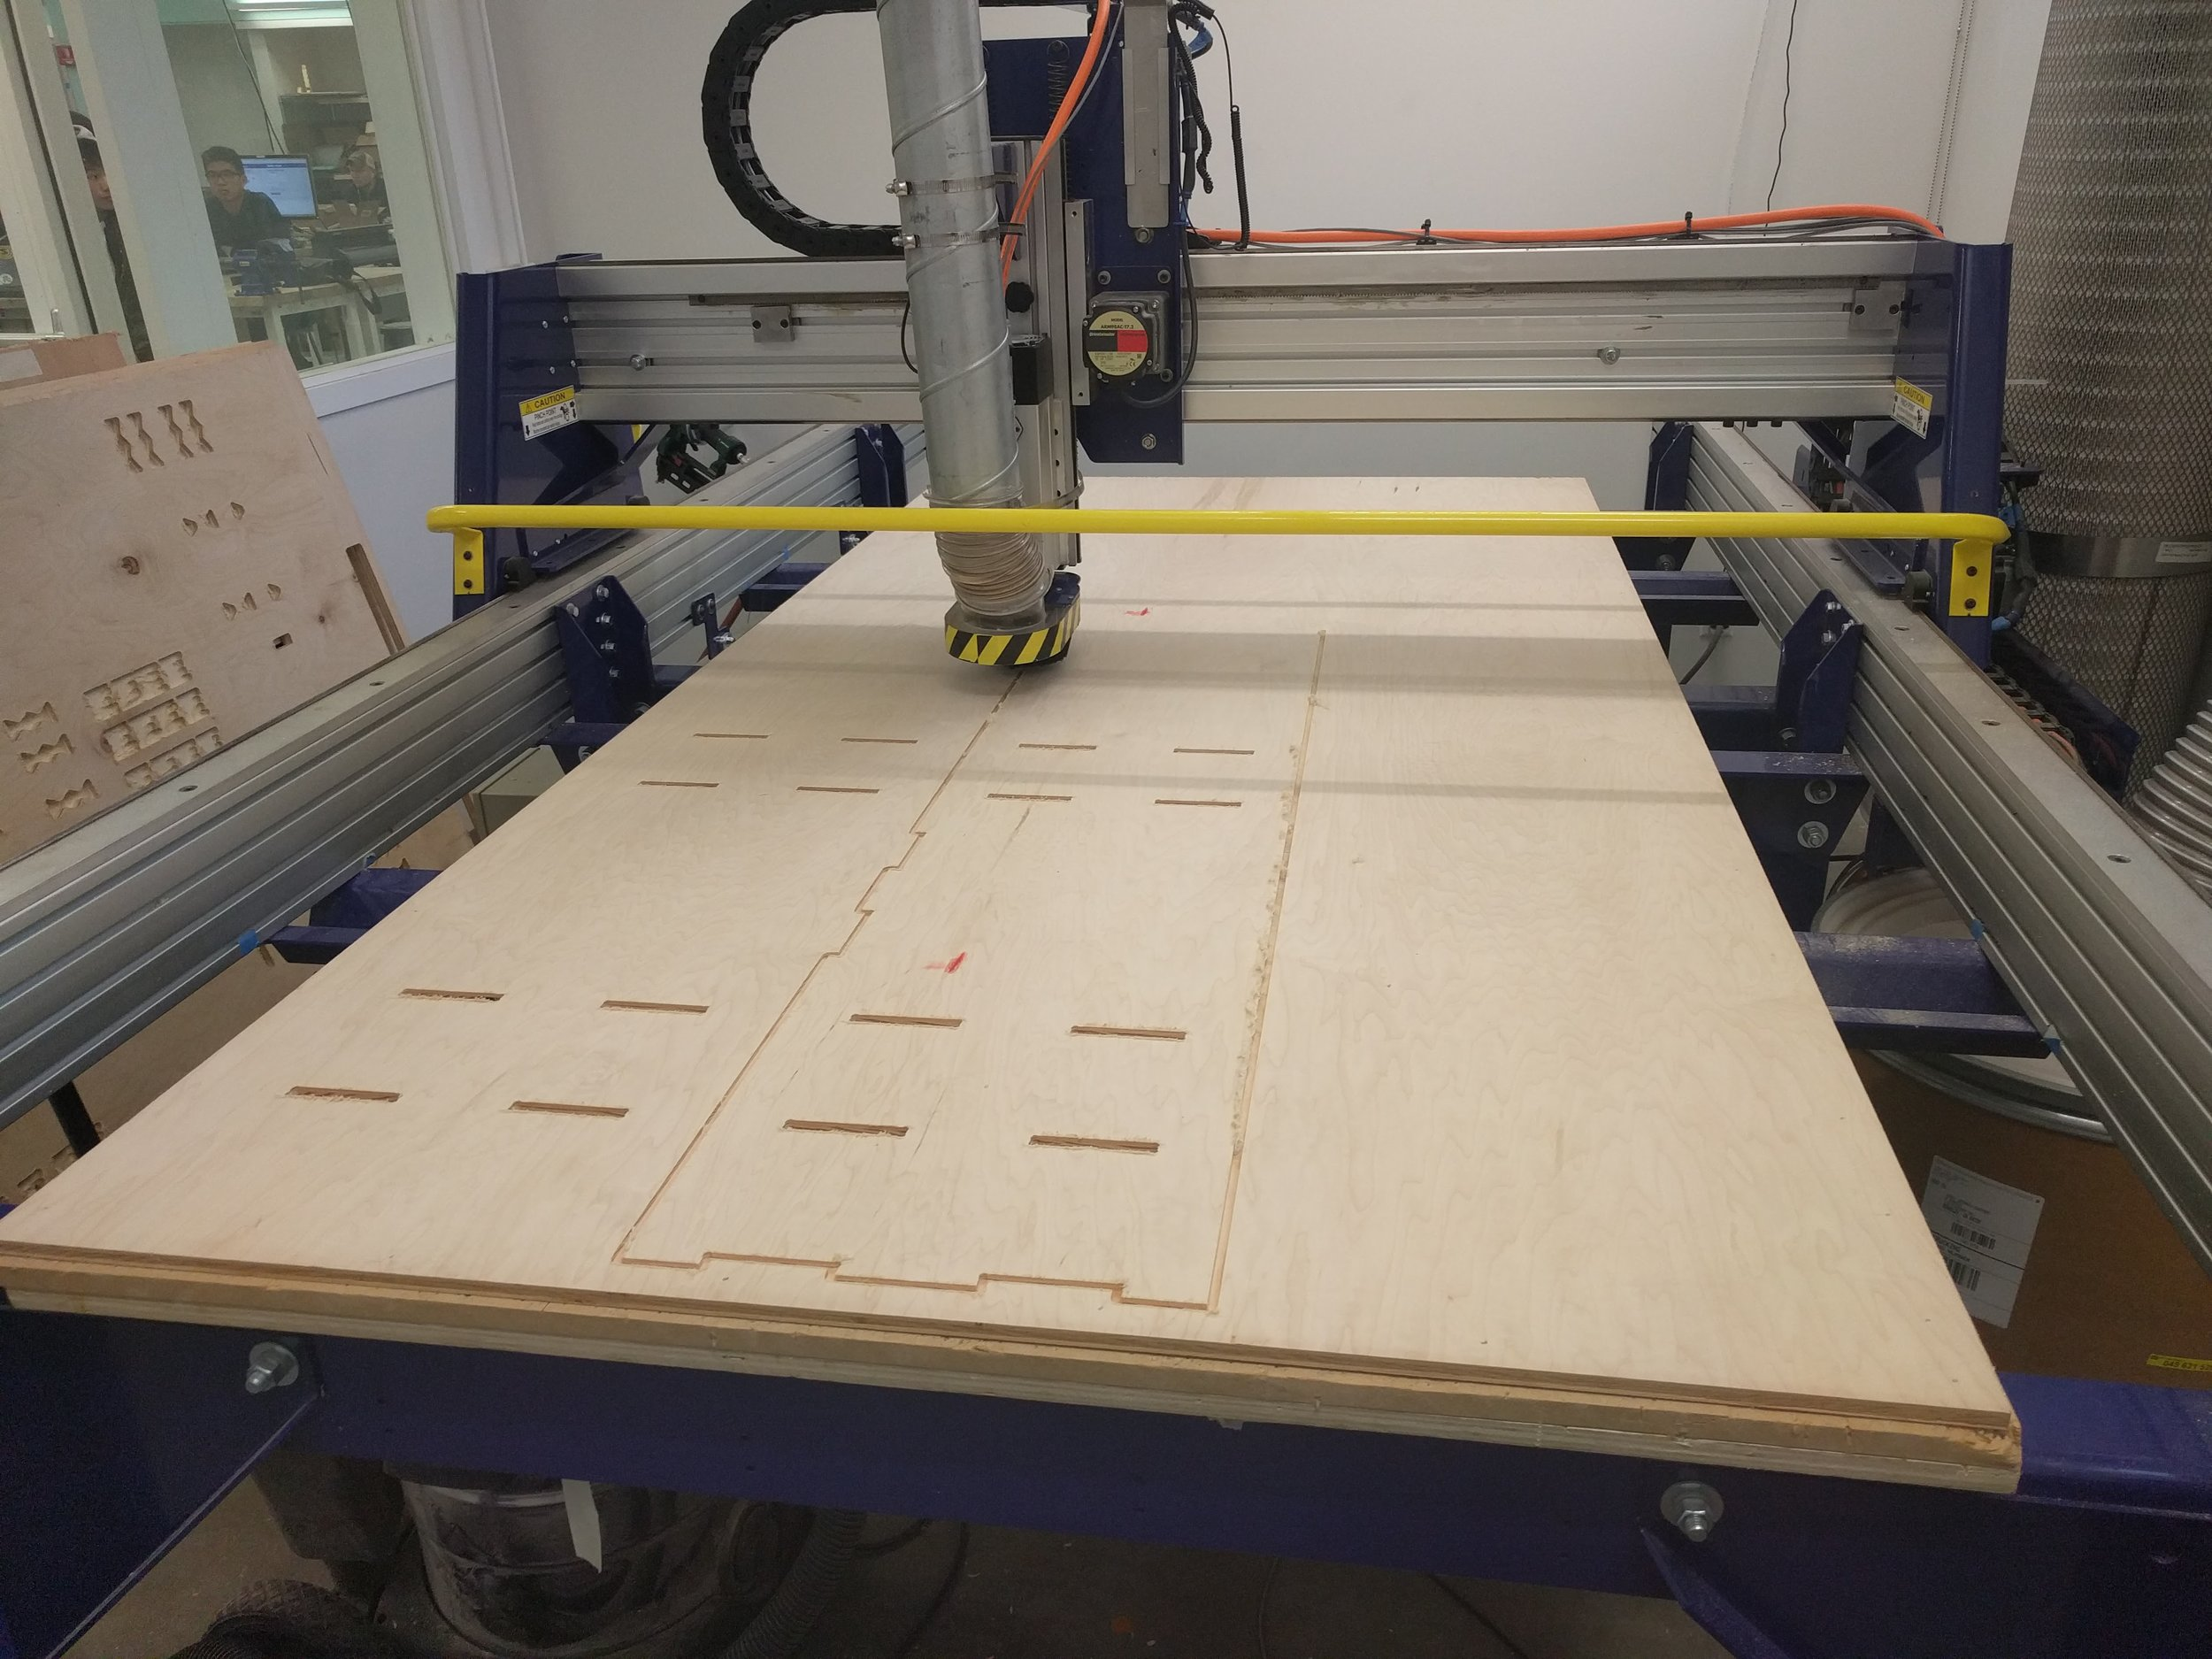 Milling in progress on a 4' x 8' Shopbot Router.